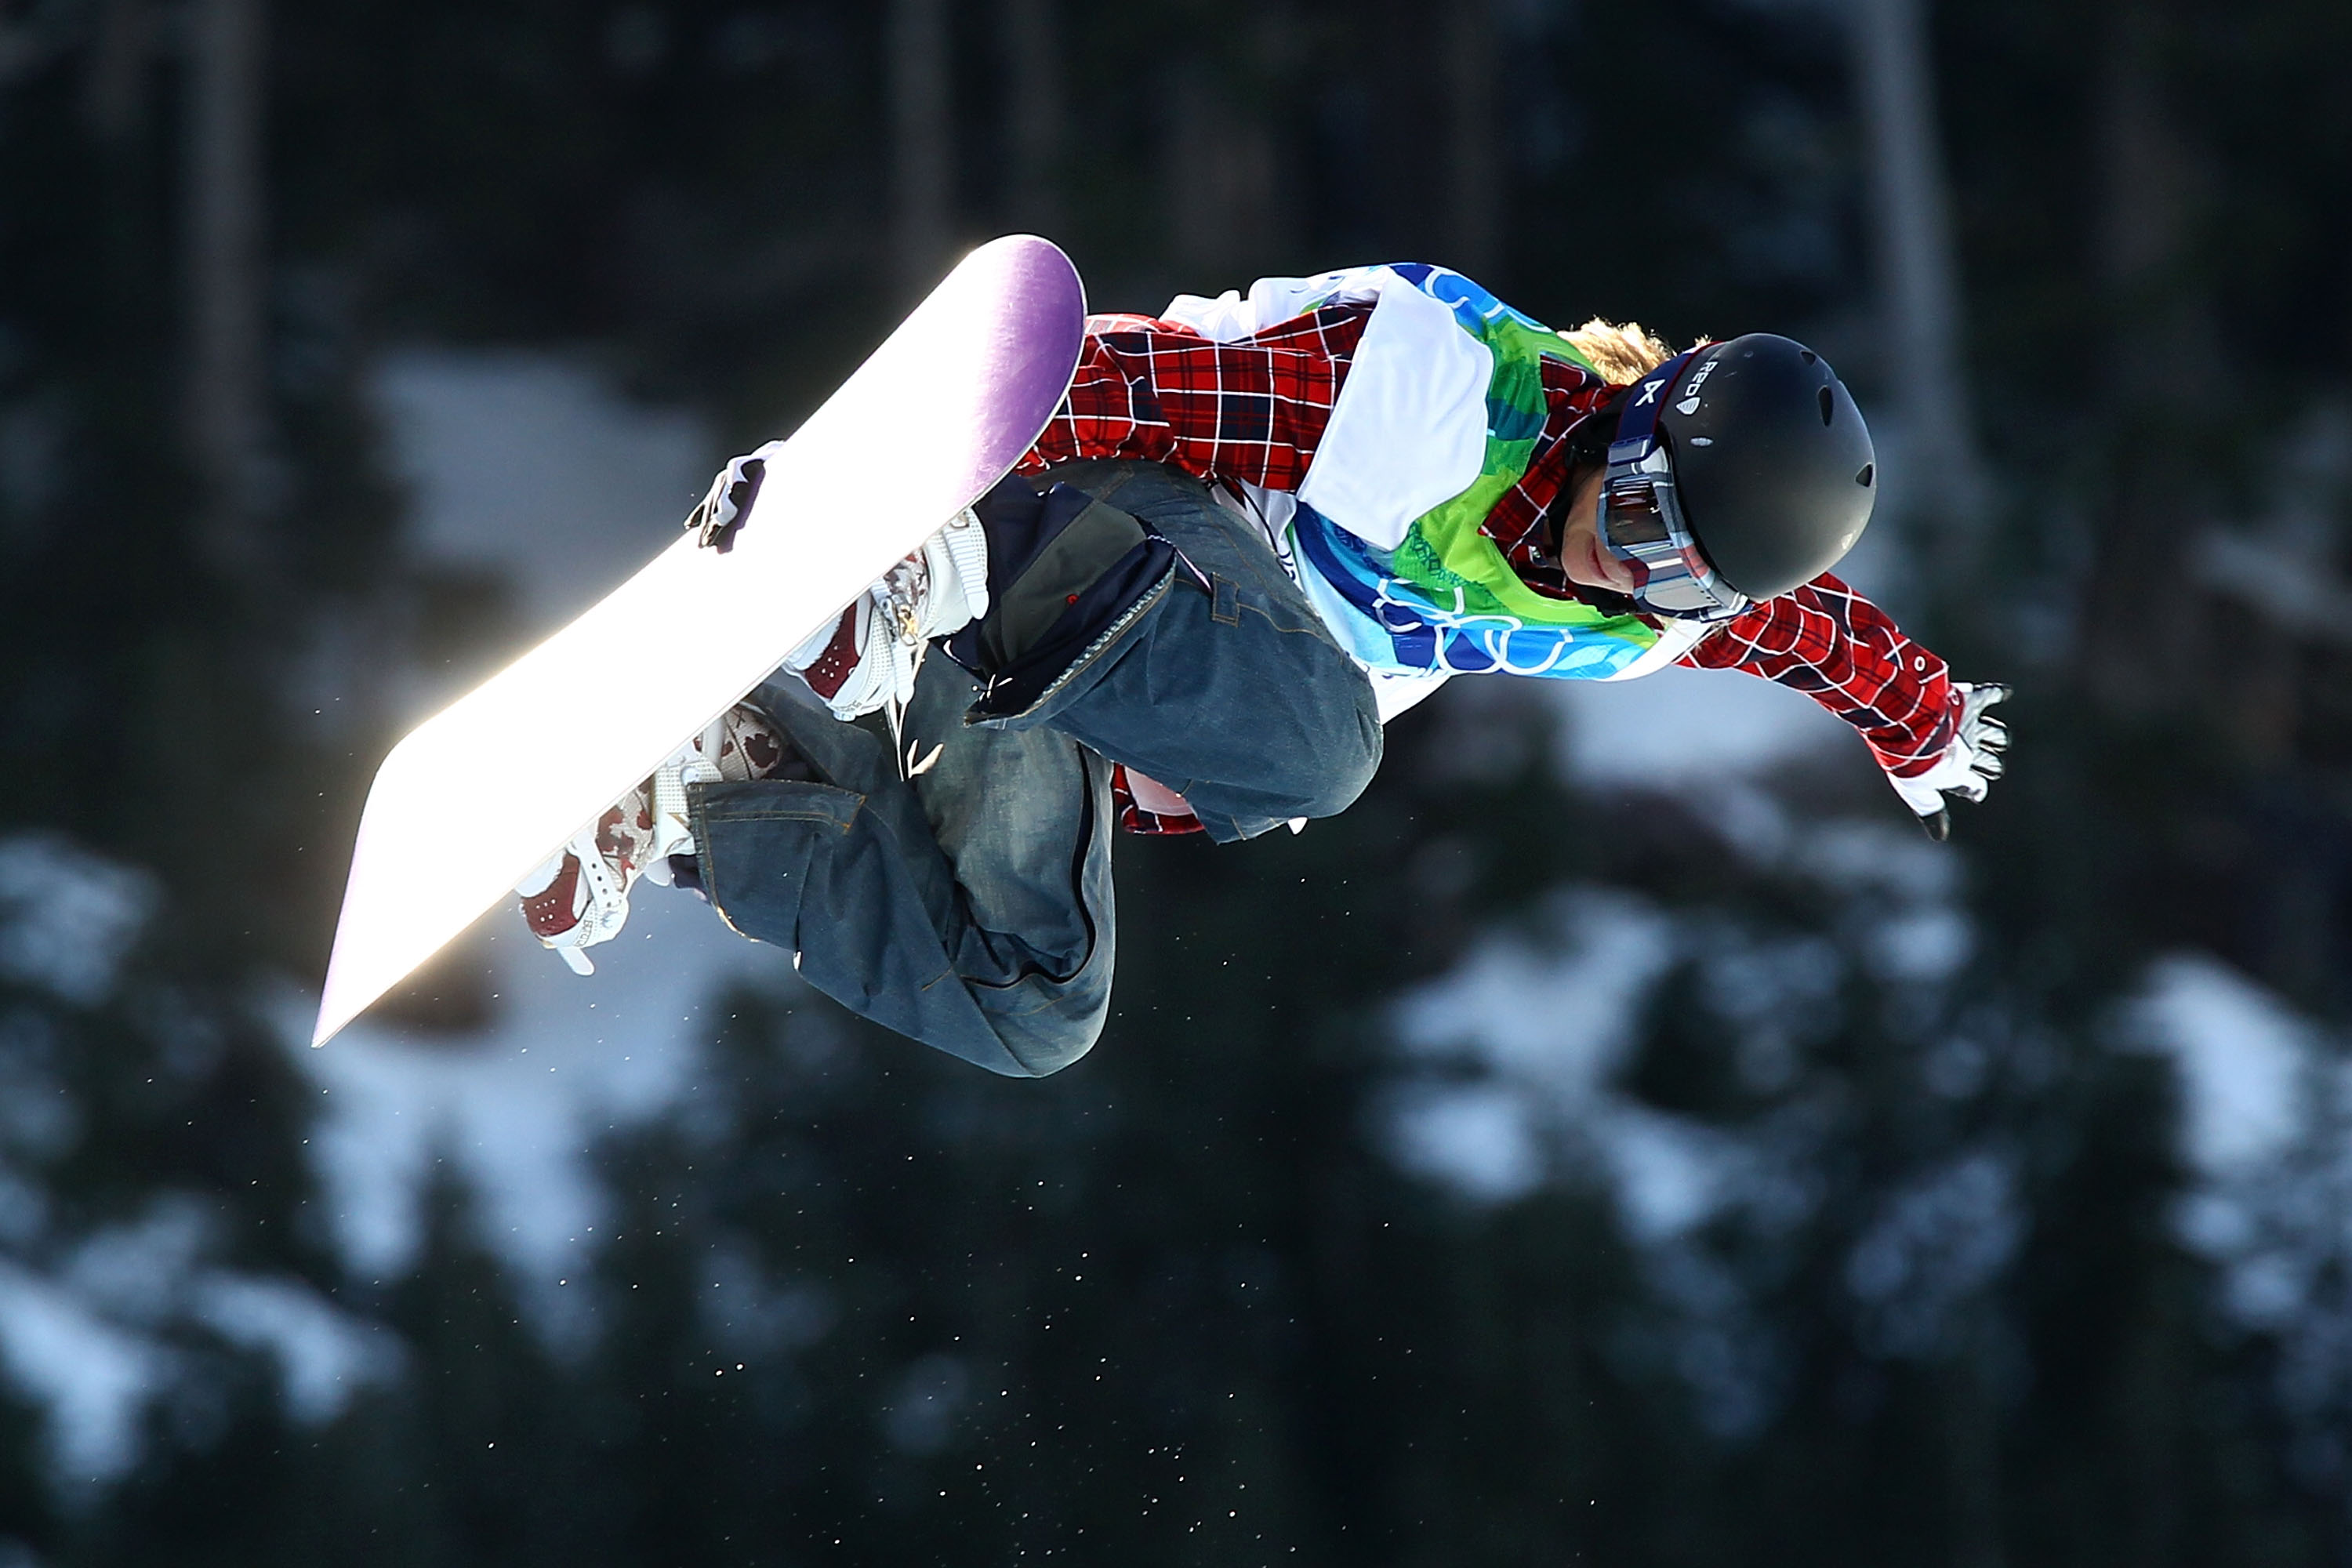 VANCOUVER, BC - FEBRUARY 18:  Hannah Teter of The United States competes in the Snowboard Women's Halfpipe on day seven of the Vancouver 2010 Winter Olympics at Cypress Snowboard & Ski-Cross Stadium on February 18, 2010 in Vancouver, Canada.  (Photo by Al